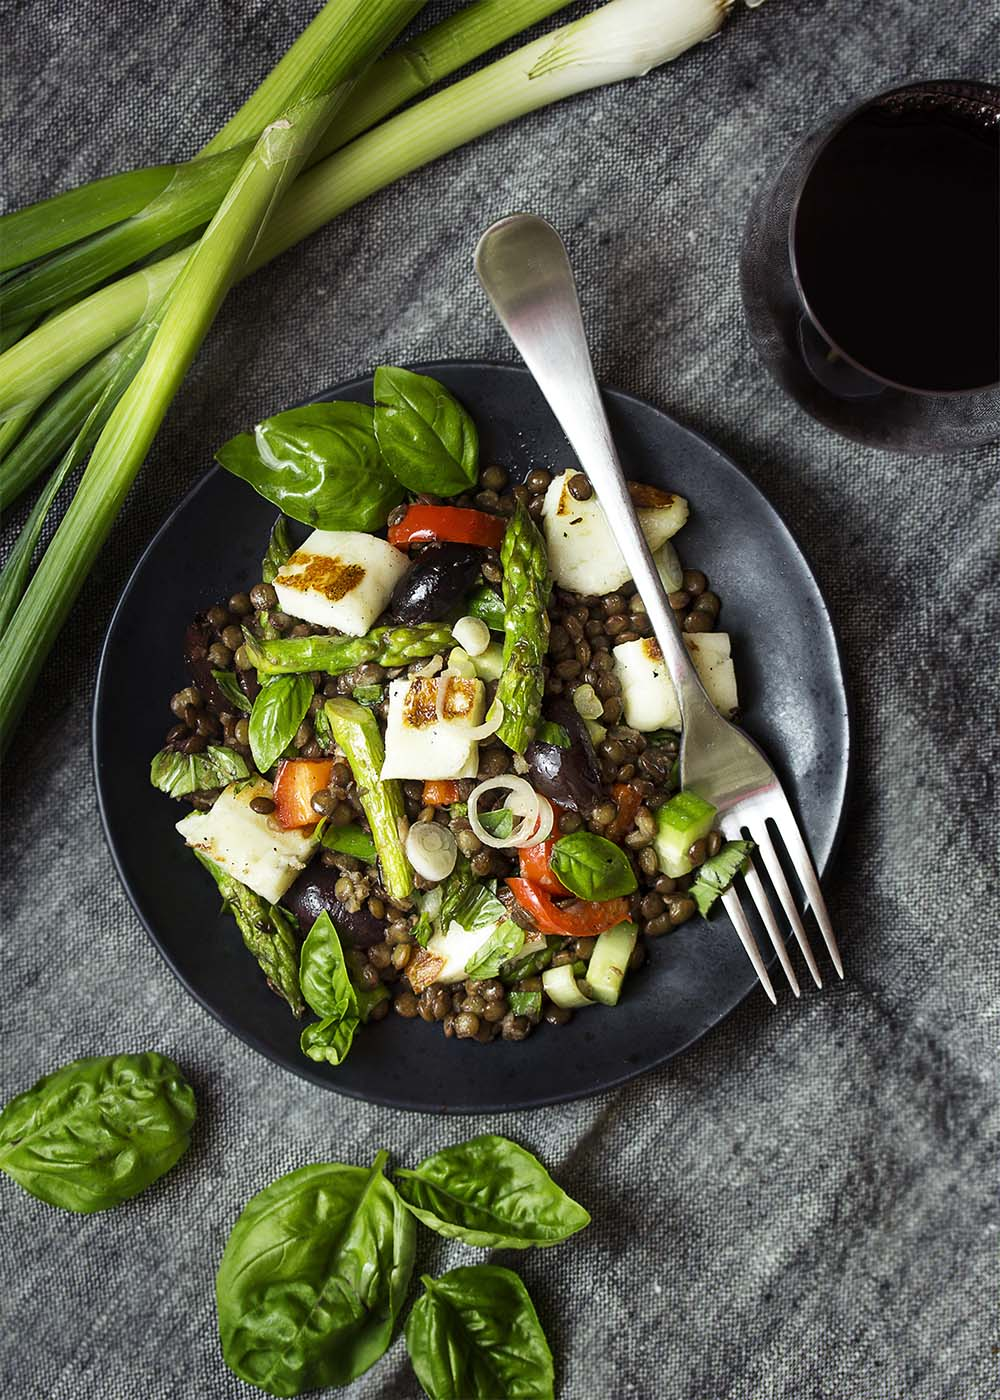 Top view of a plate of halloumi lentil salad with asparagus, bell pepper, cucumbers, and olives.